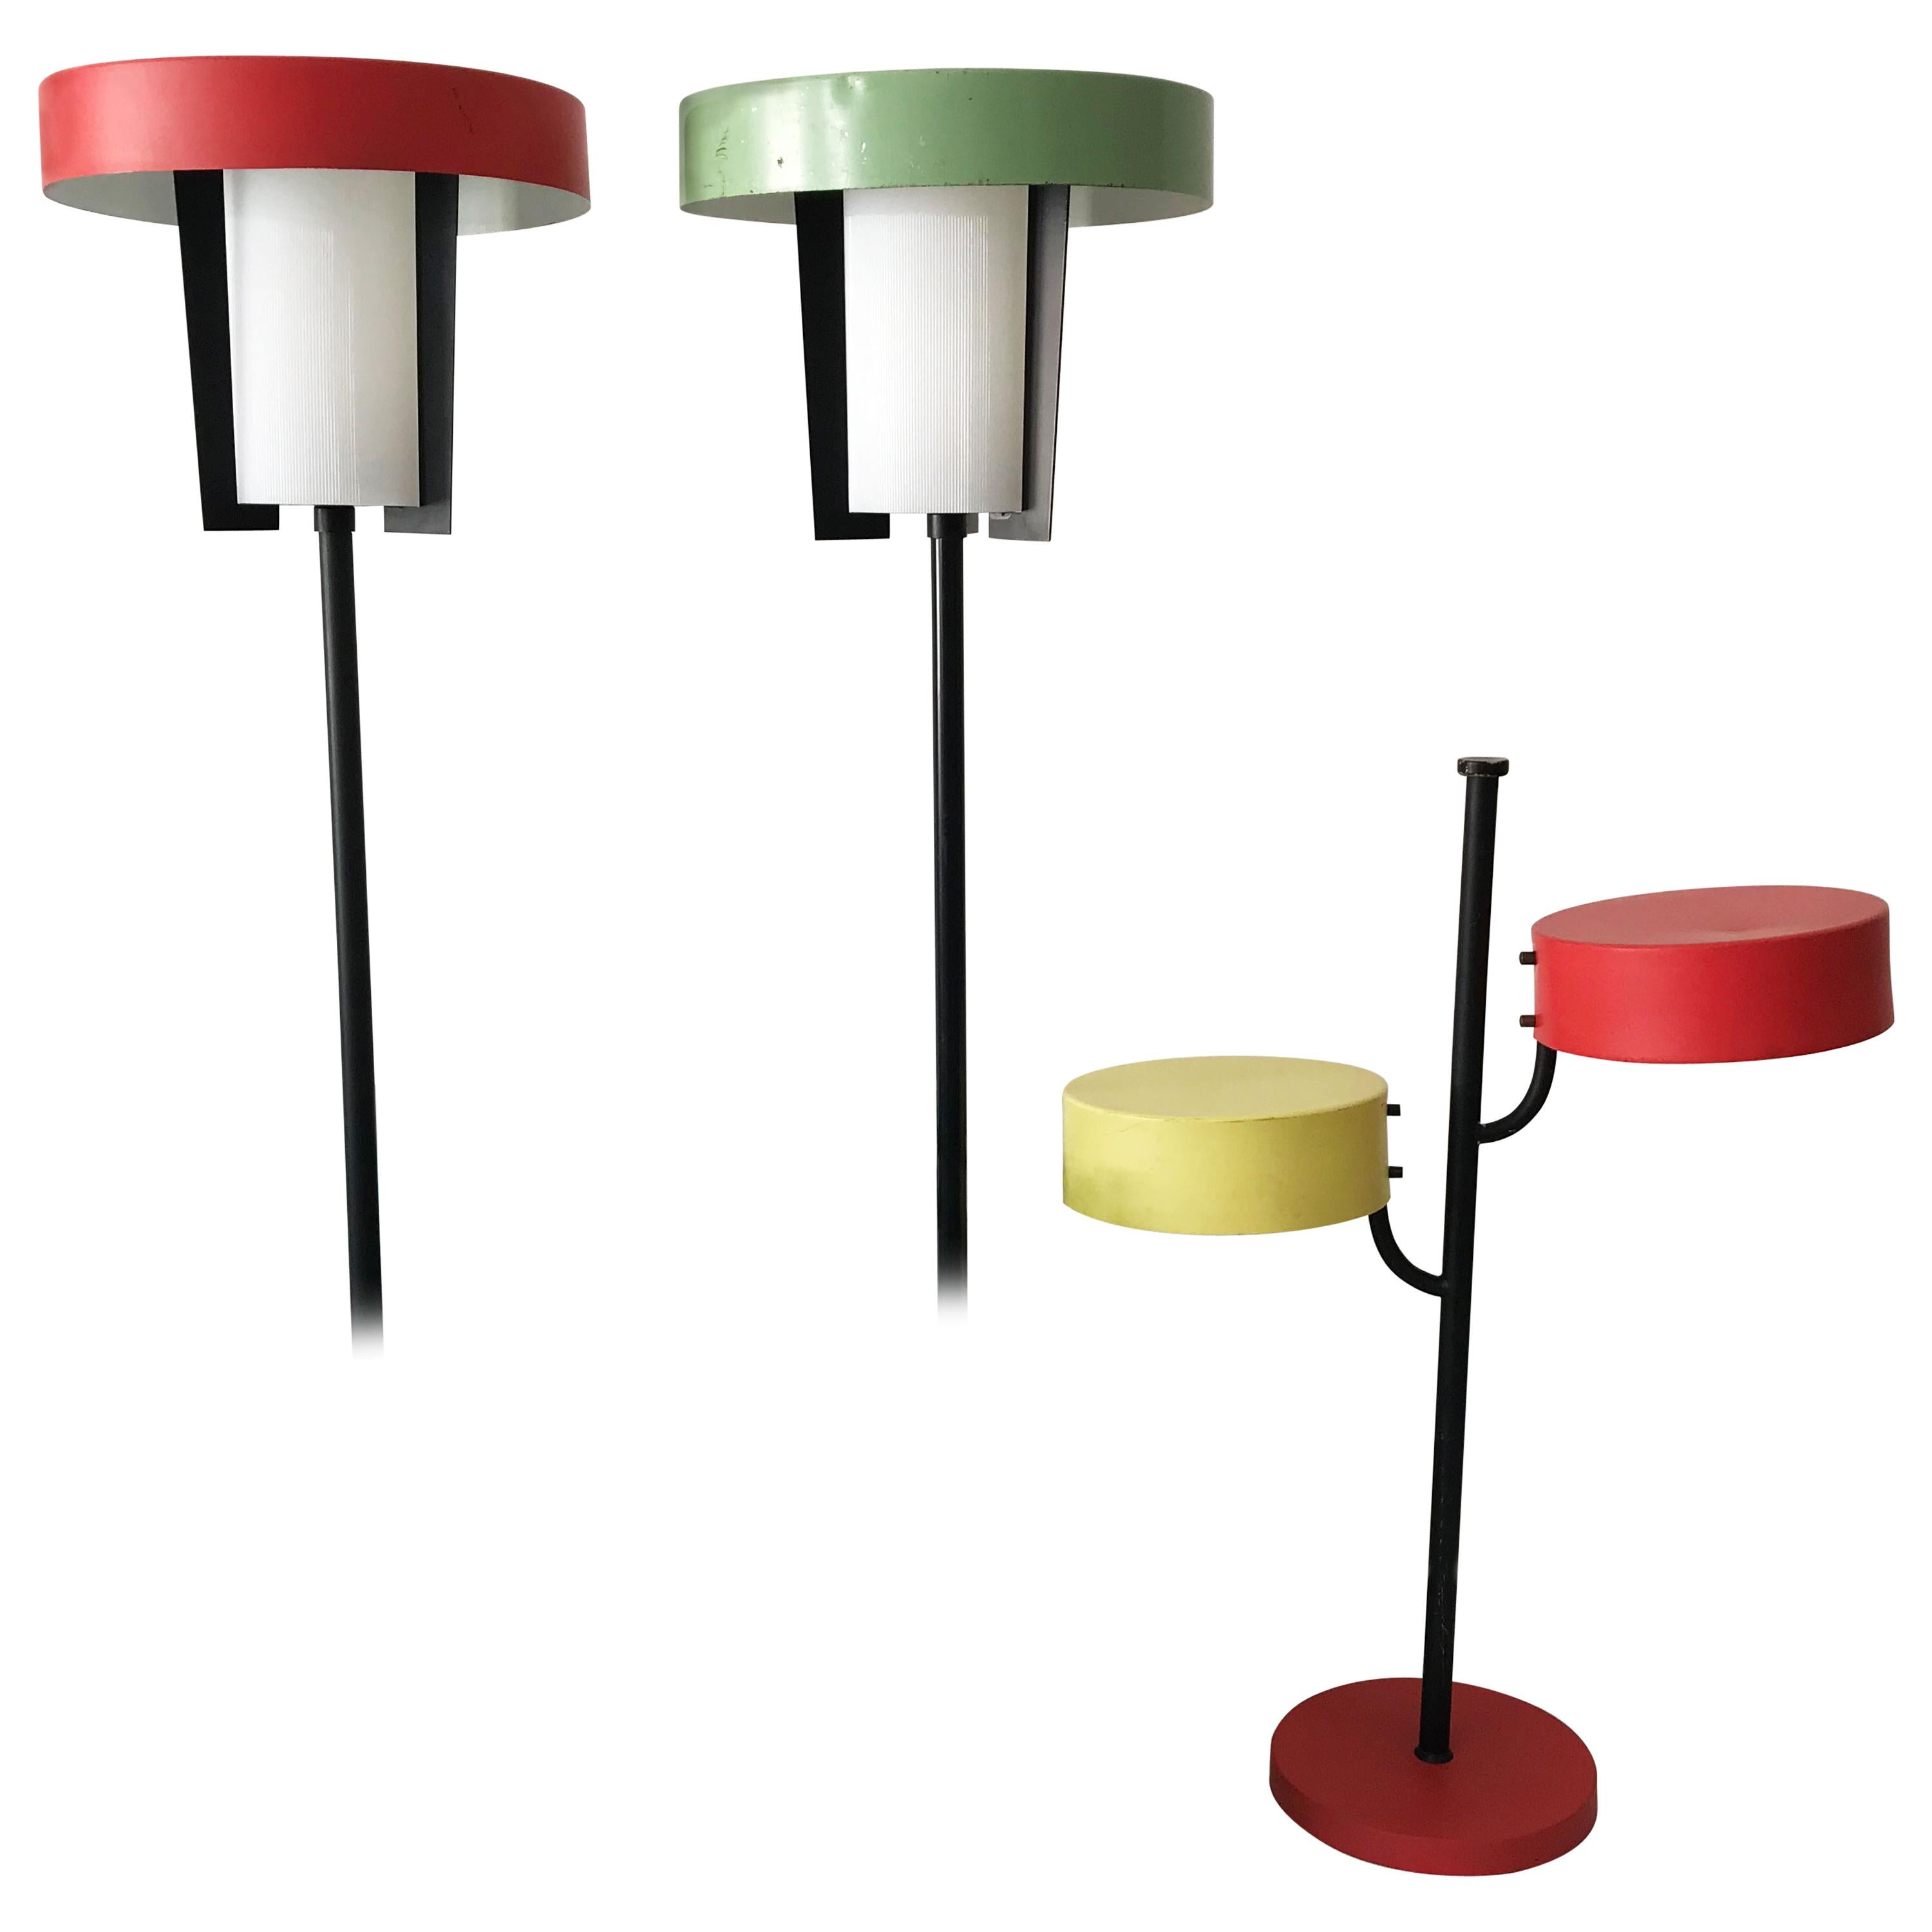 Set of Three Rare Outdoor or Garden Lamps by Kaiser Leuchten Germany 1950s